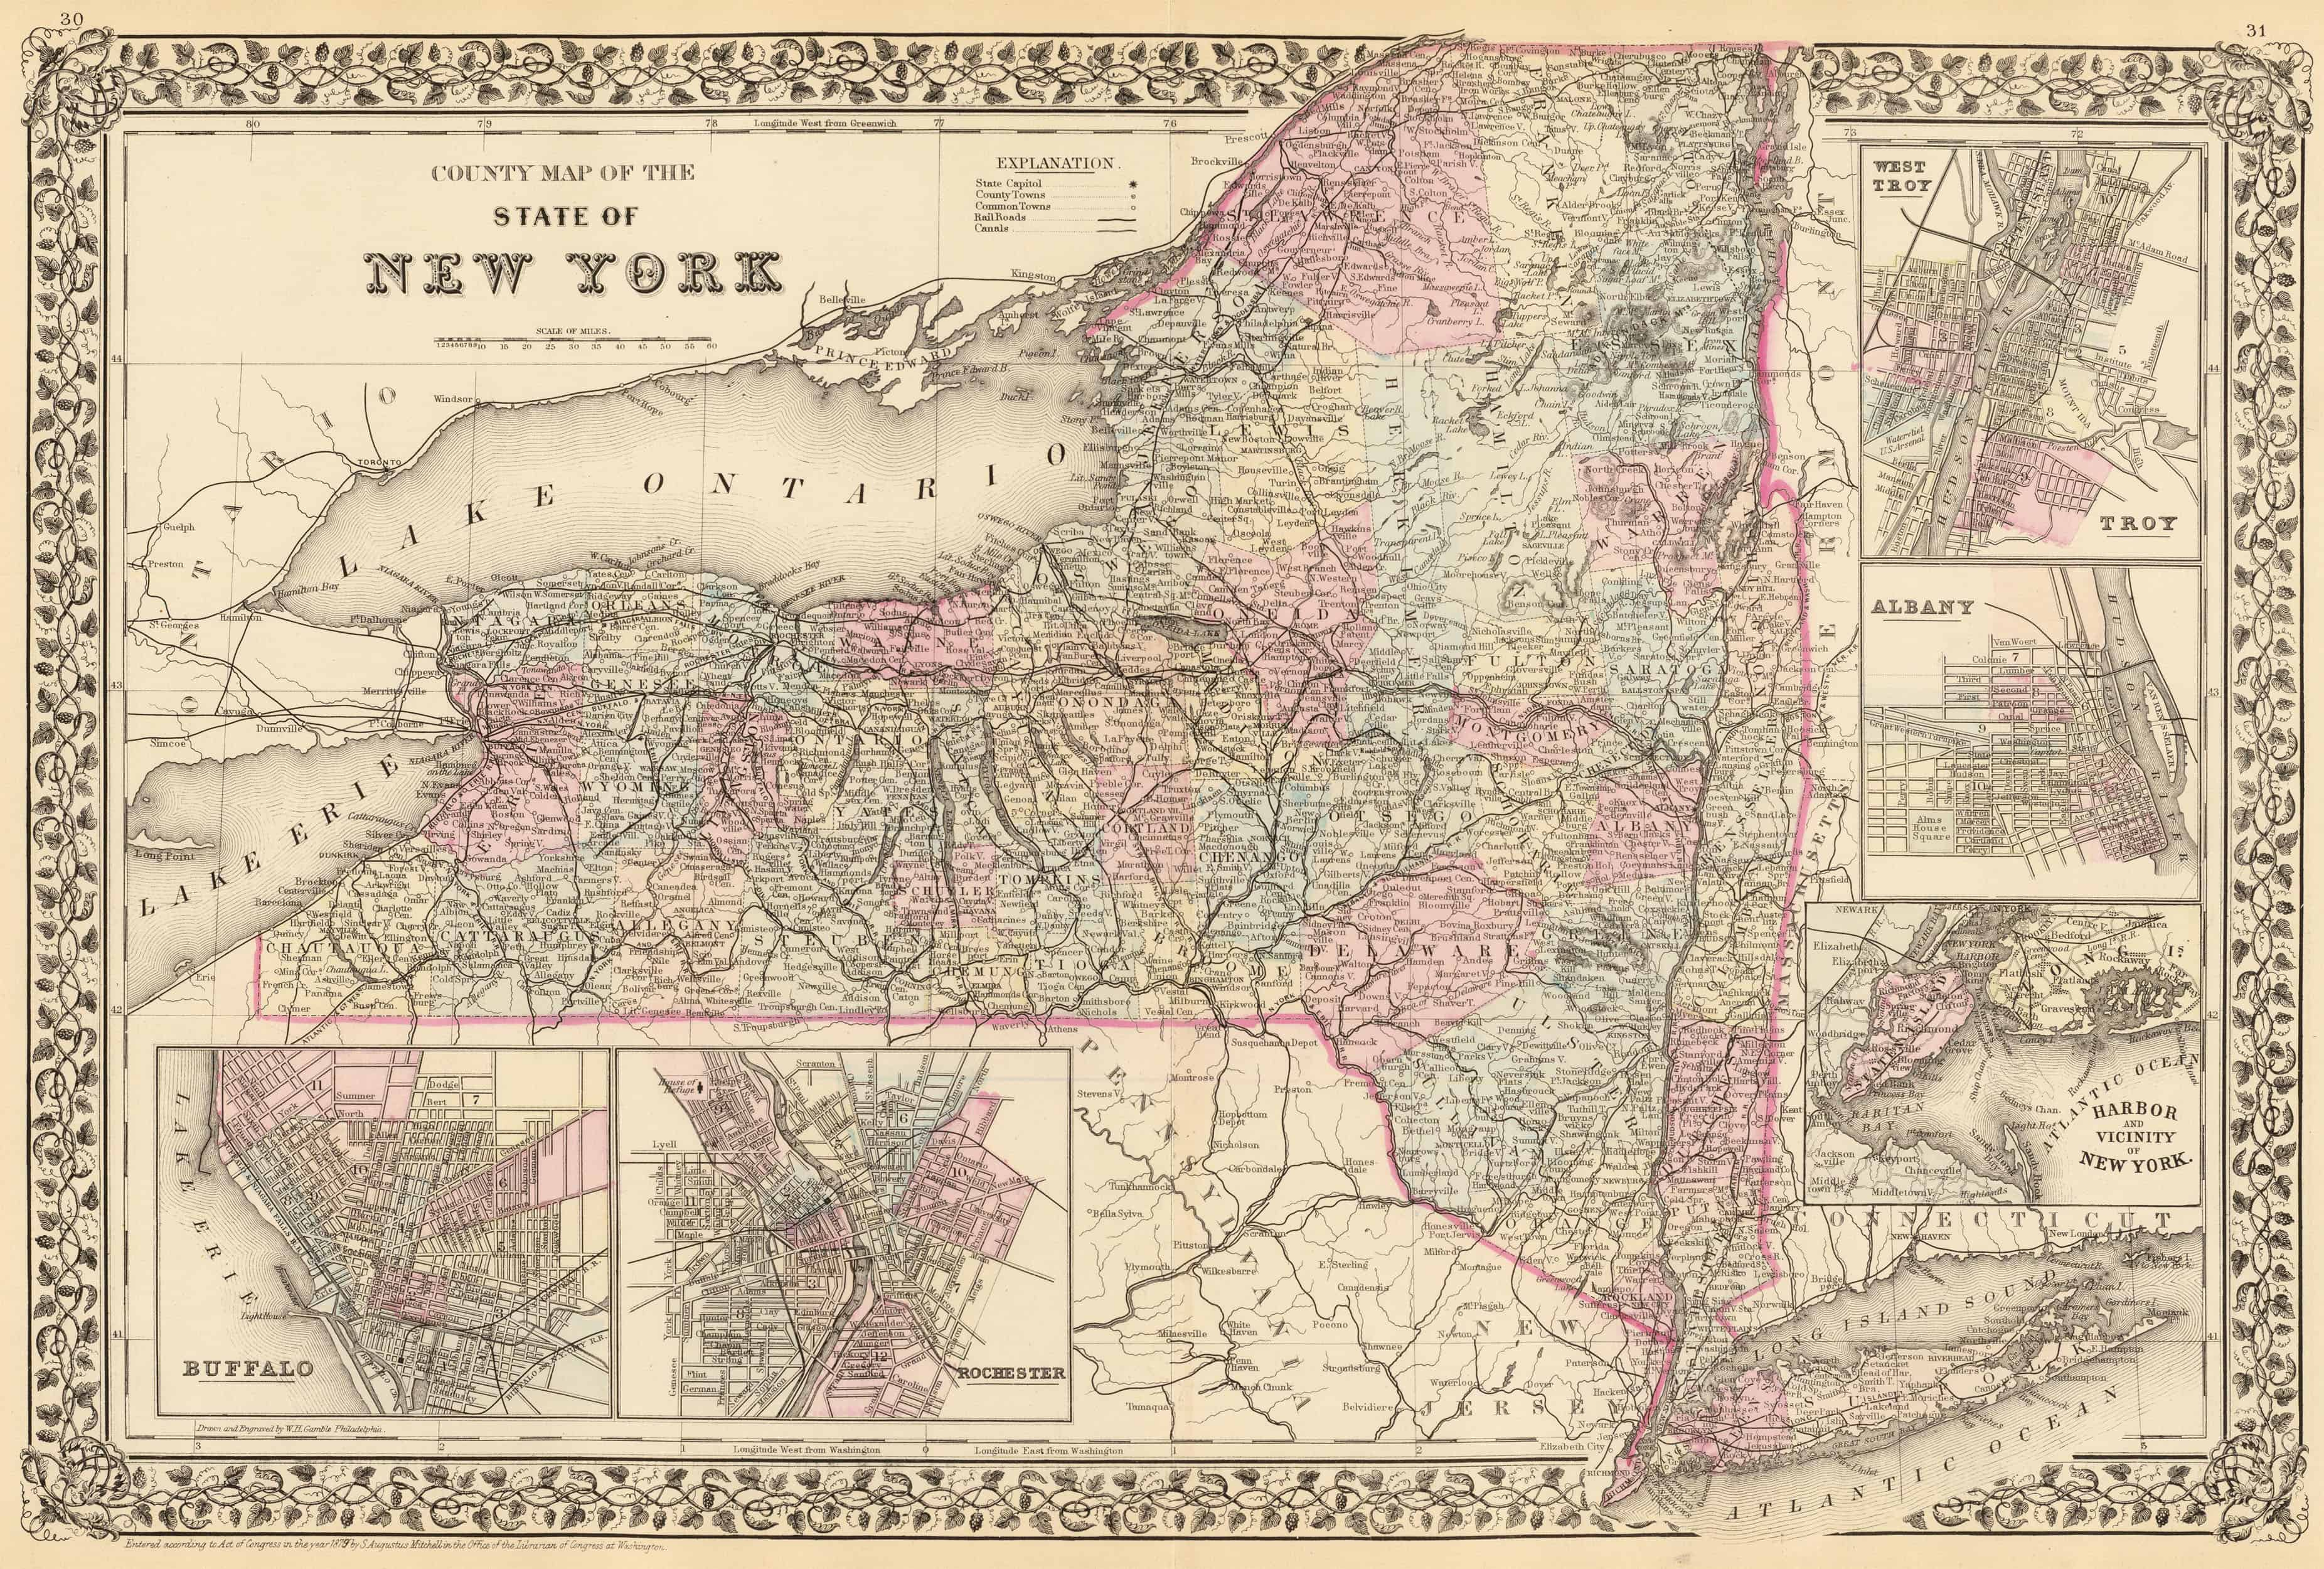 Old Historical City, County and State Maps of New York